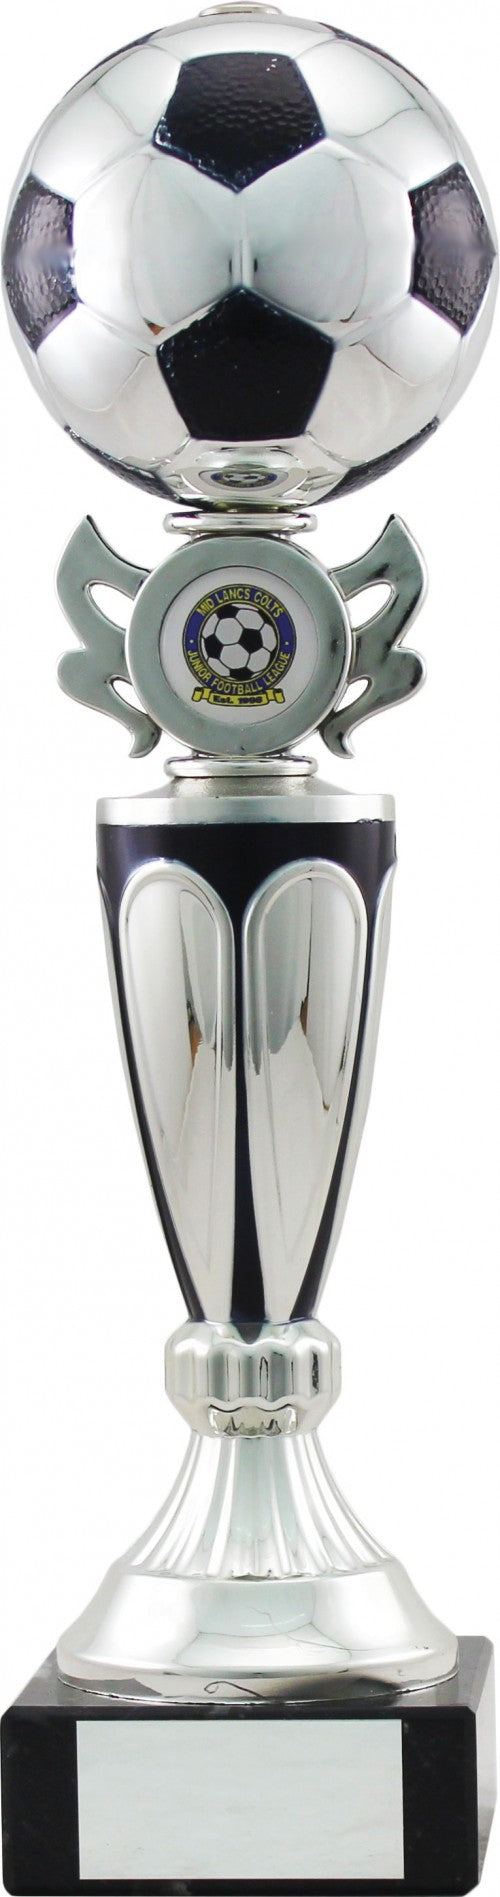 Silver Ball Football Trophy